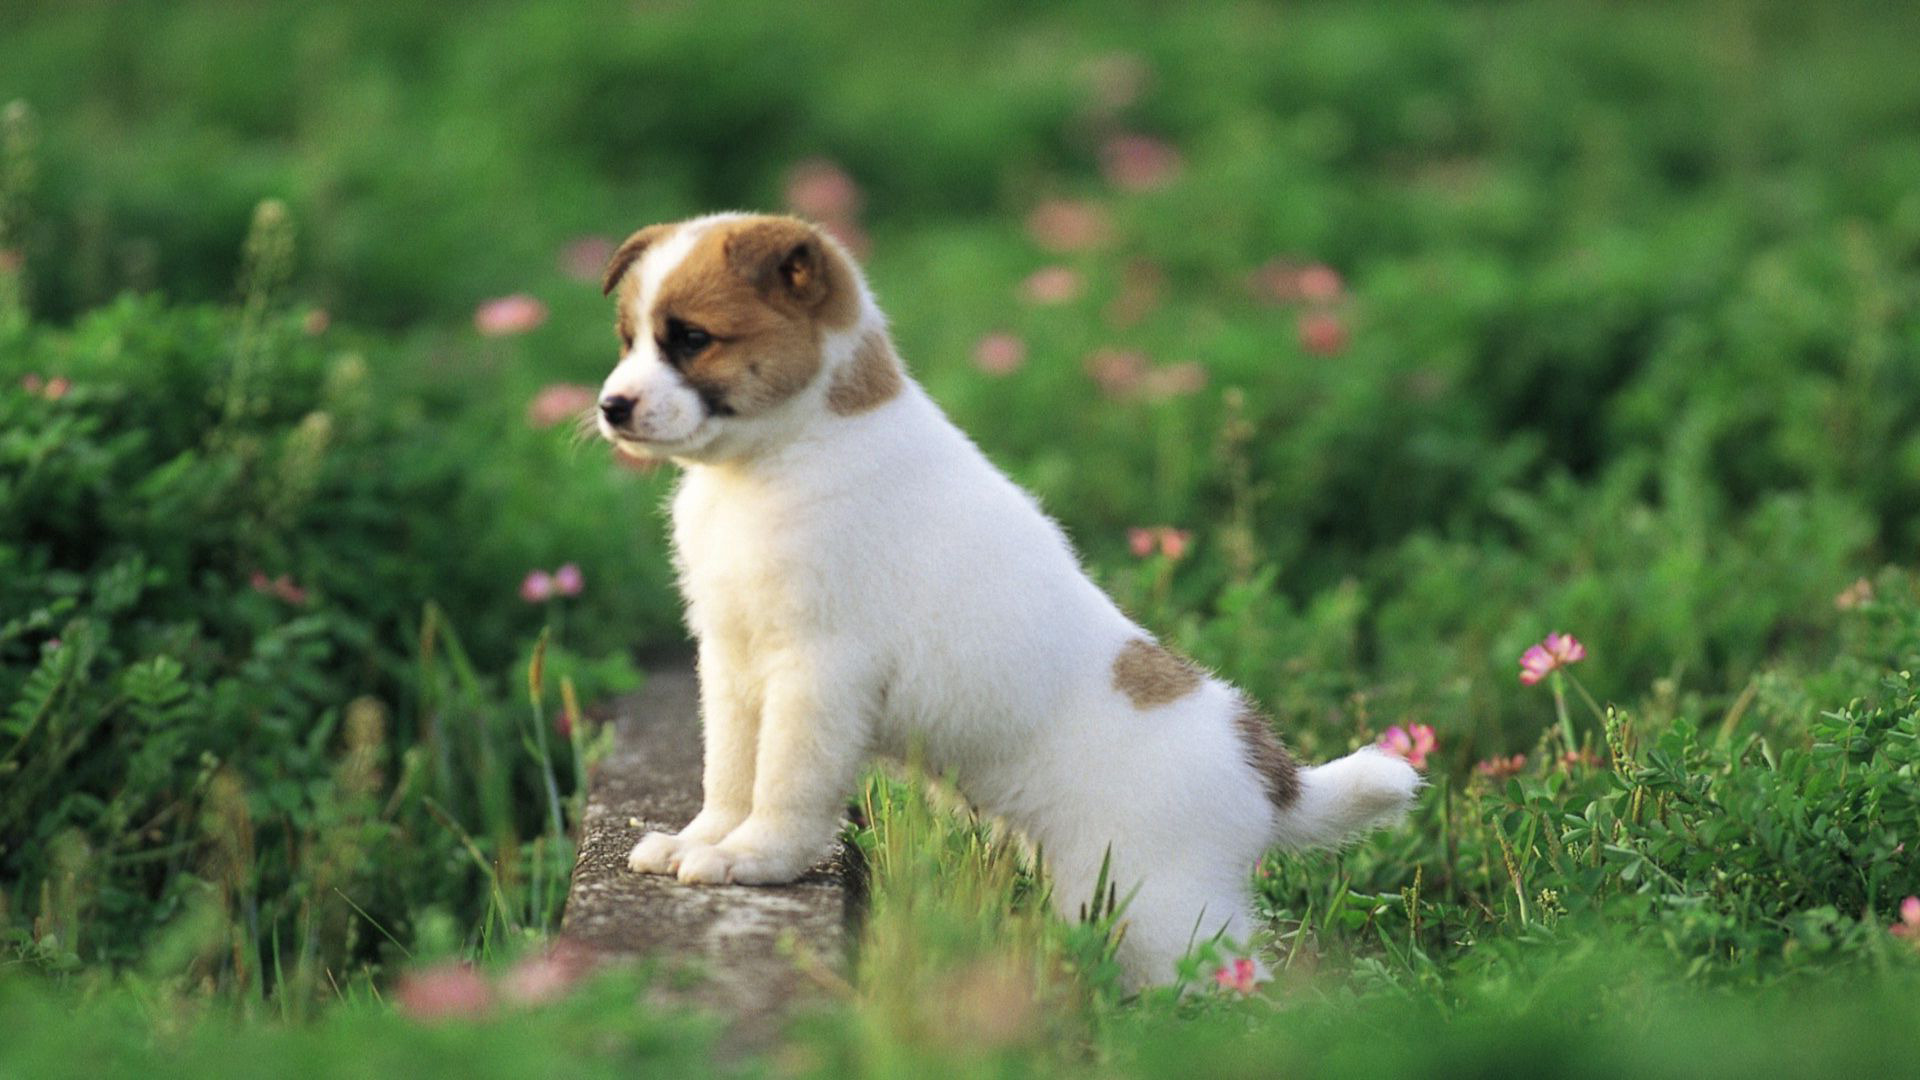 Cute Puppies #16